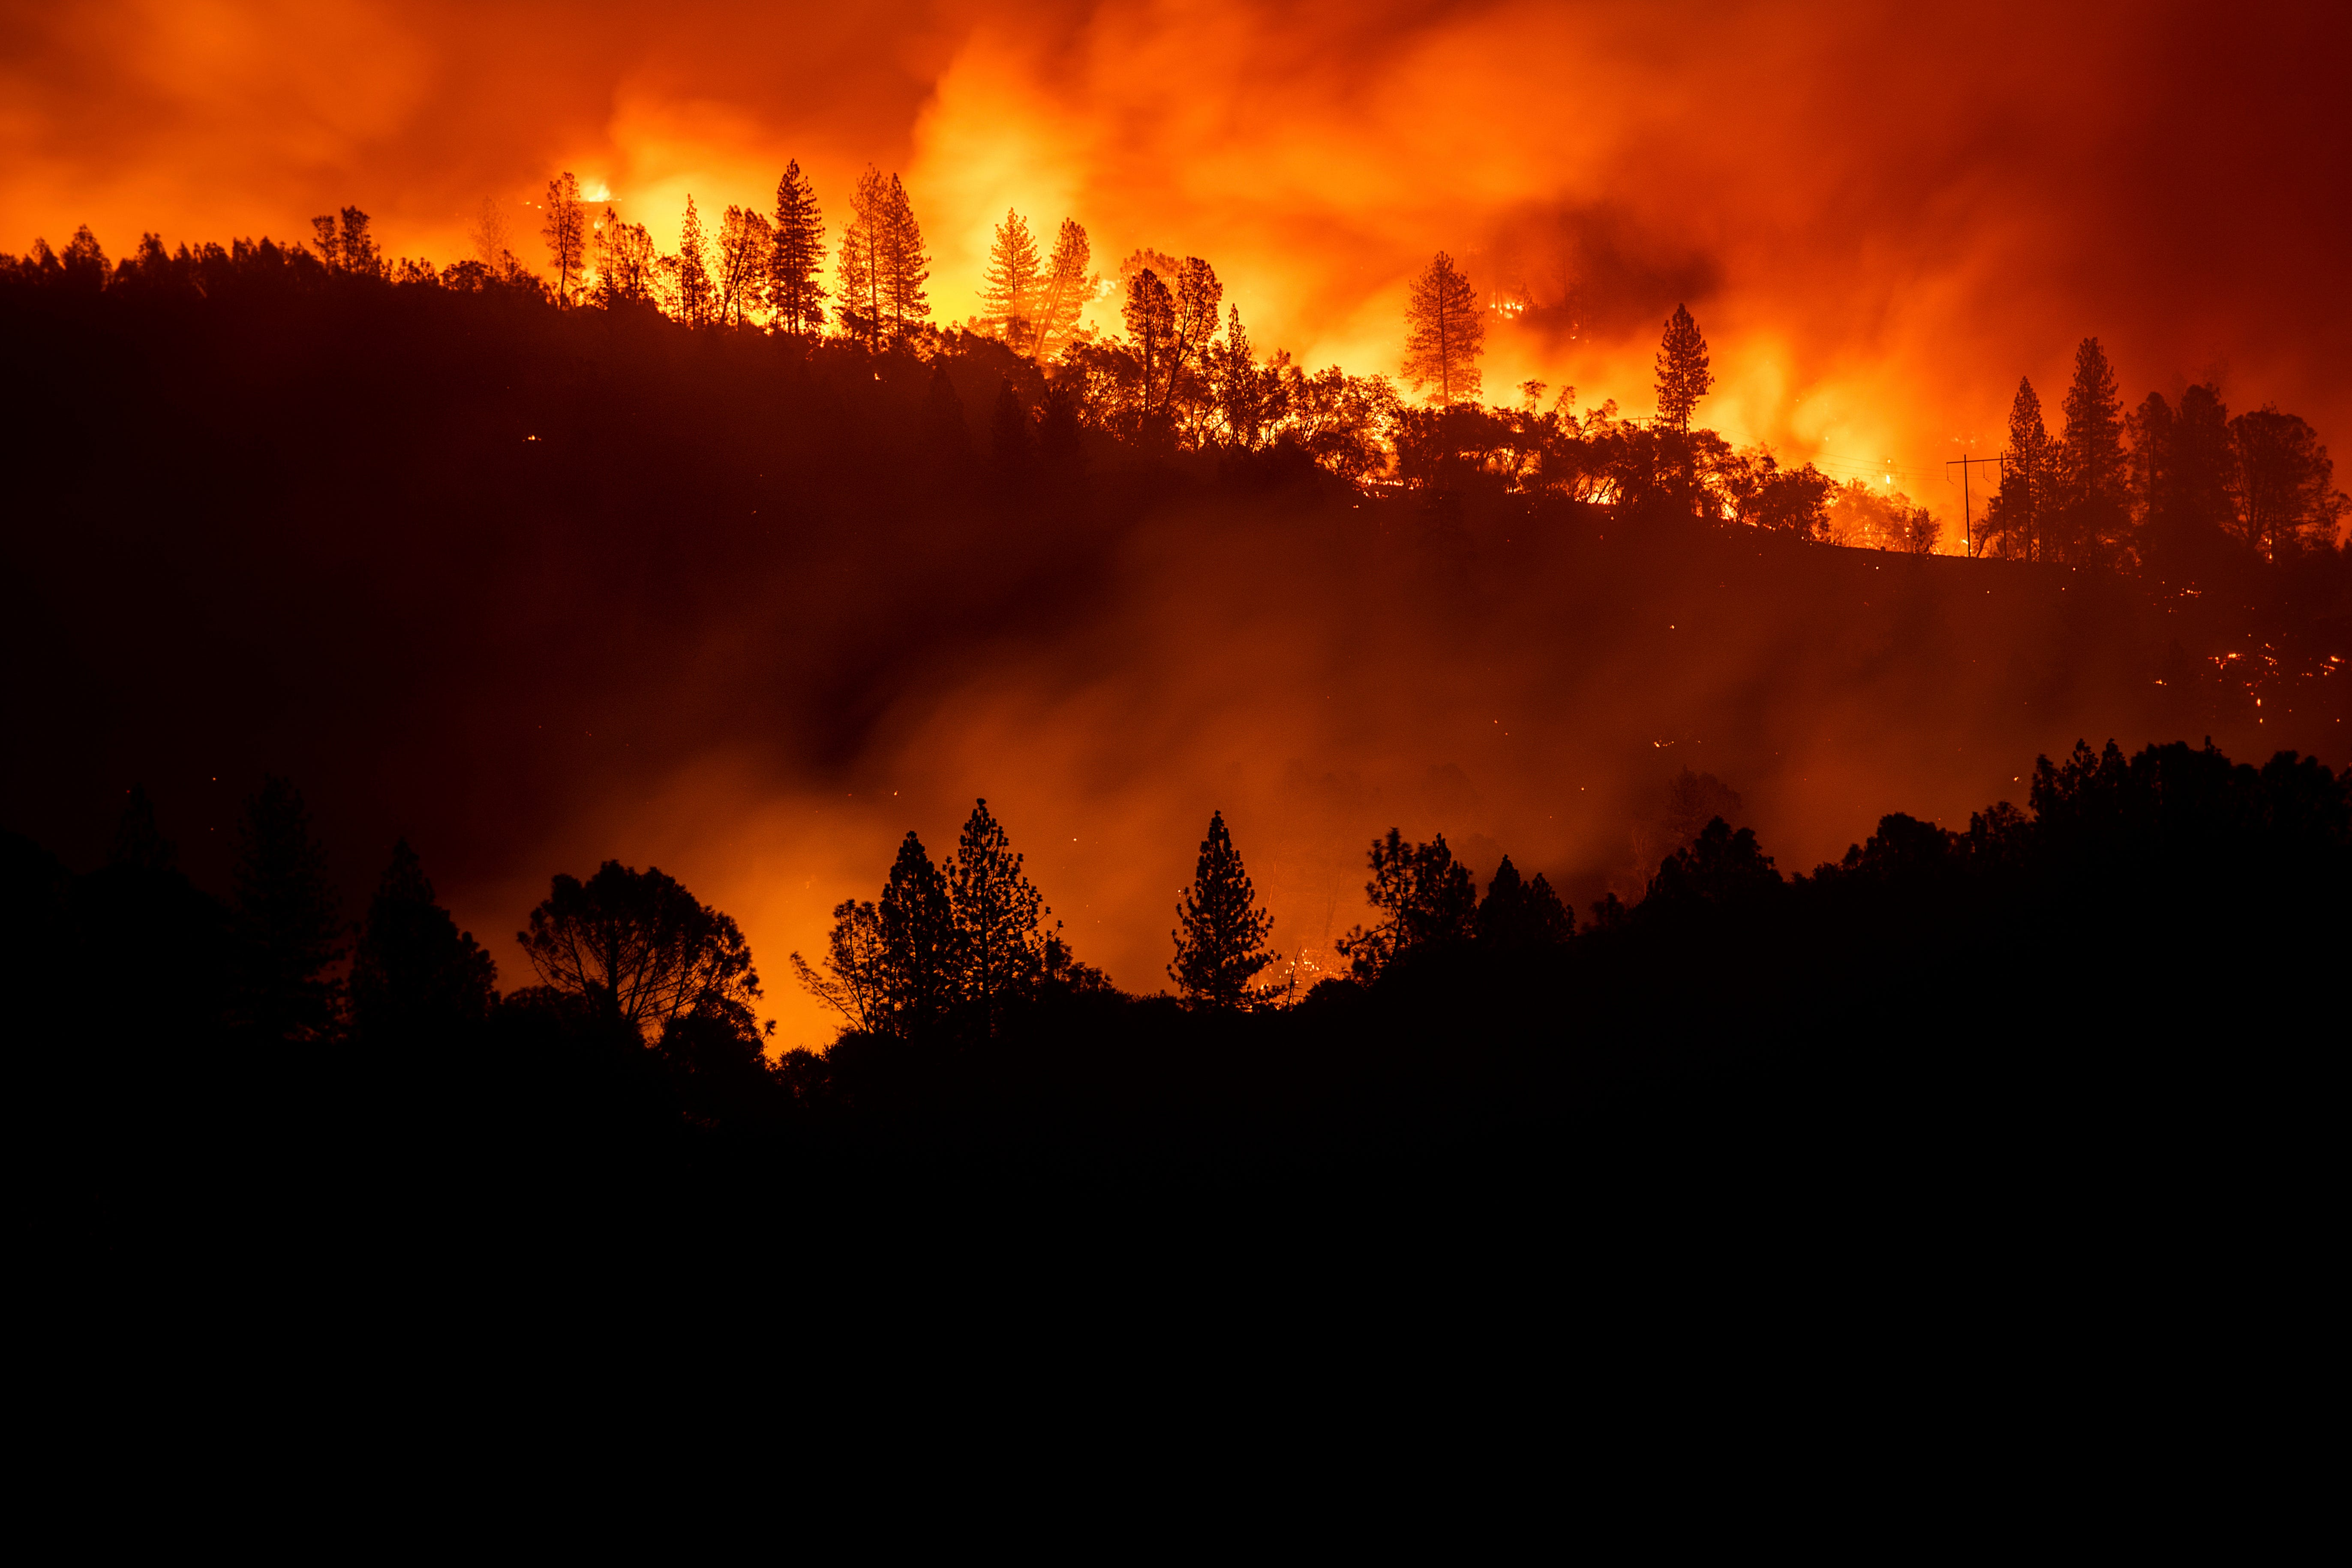 In this Nov. 10, 2018, file photo, the Camp Fire burns along a ridgetop near Big Bend, Calif. California is calling in the National Guard for the first time to help protect communities from wildfires like the one that destroyed much of the city of Paradise last fall. Starting in April 2019, 110 California National Guard troops will receive 11 days of training in using shovels, rakes and chain saws to thin trees and brush.